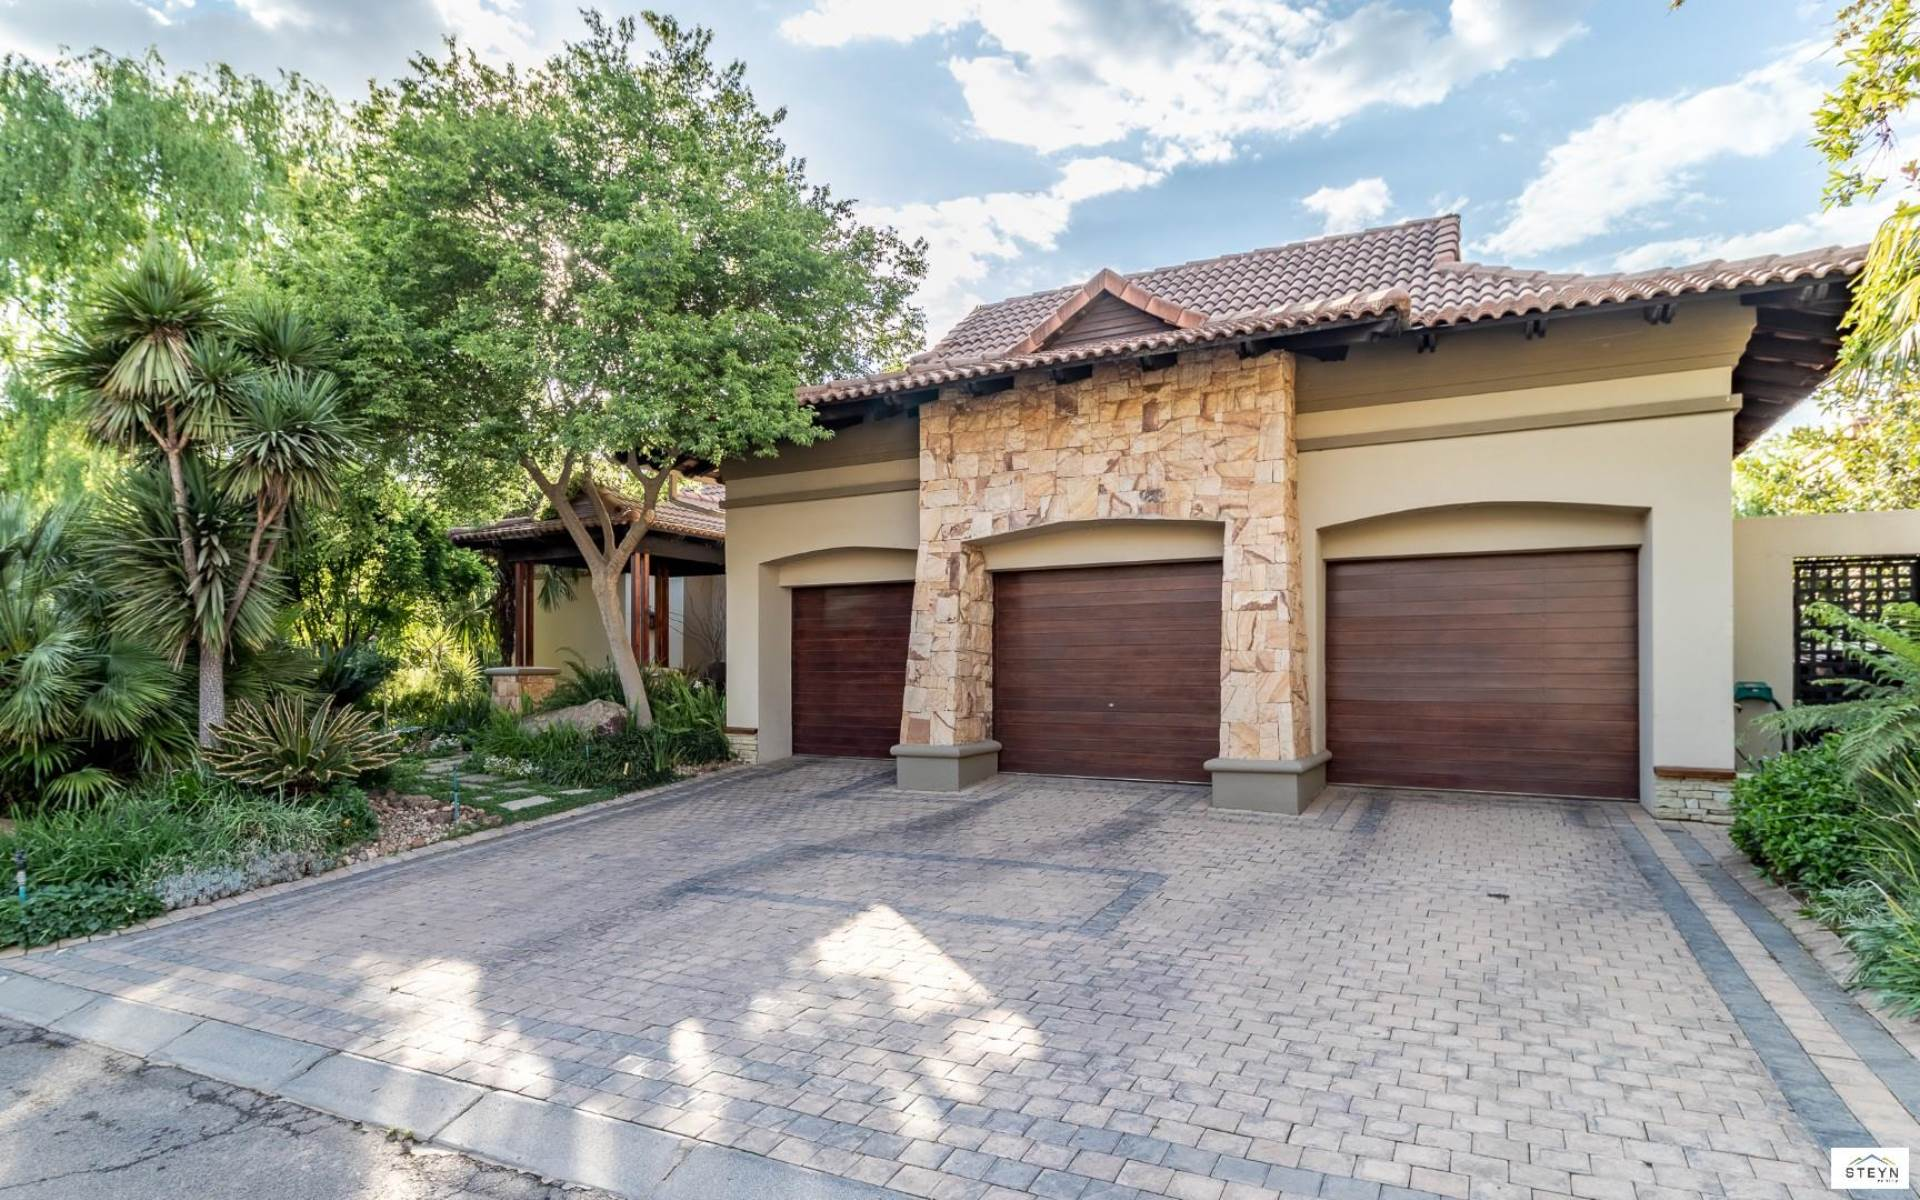 3 Garages and ample parking